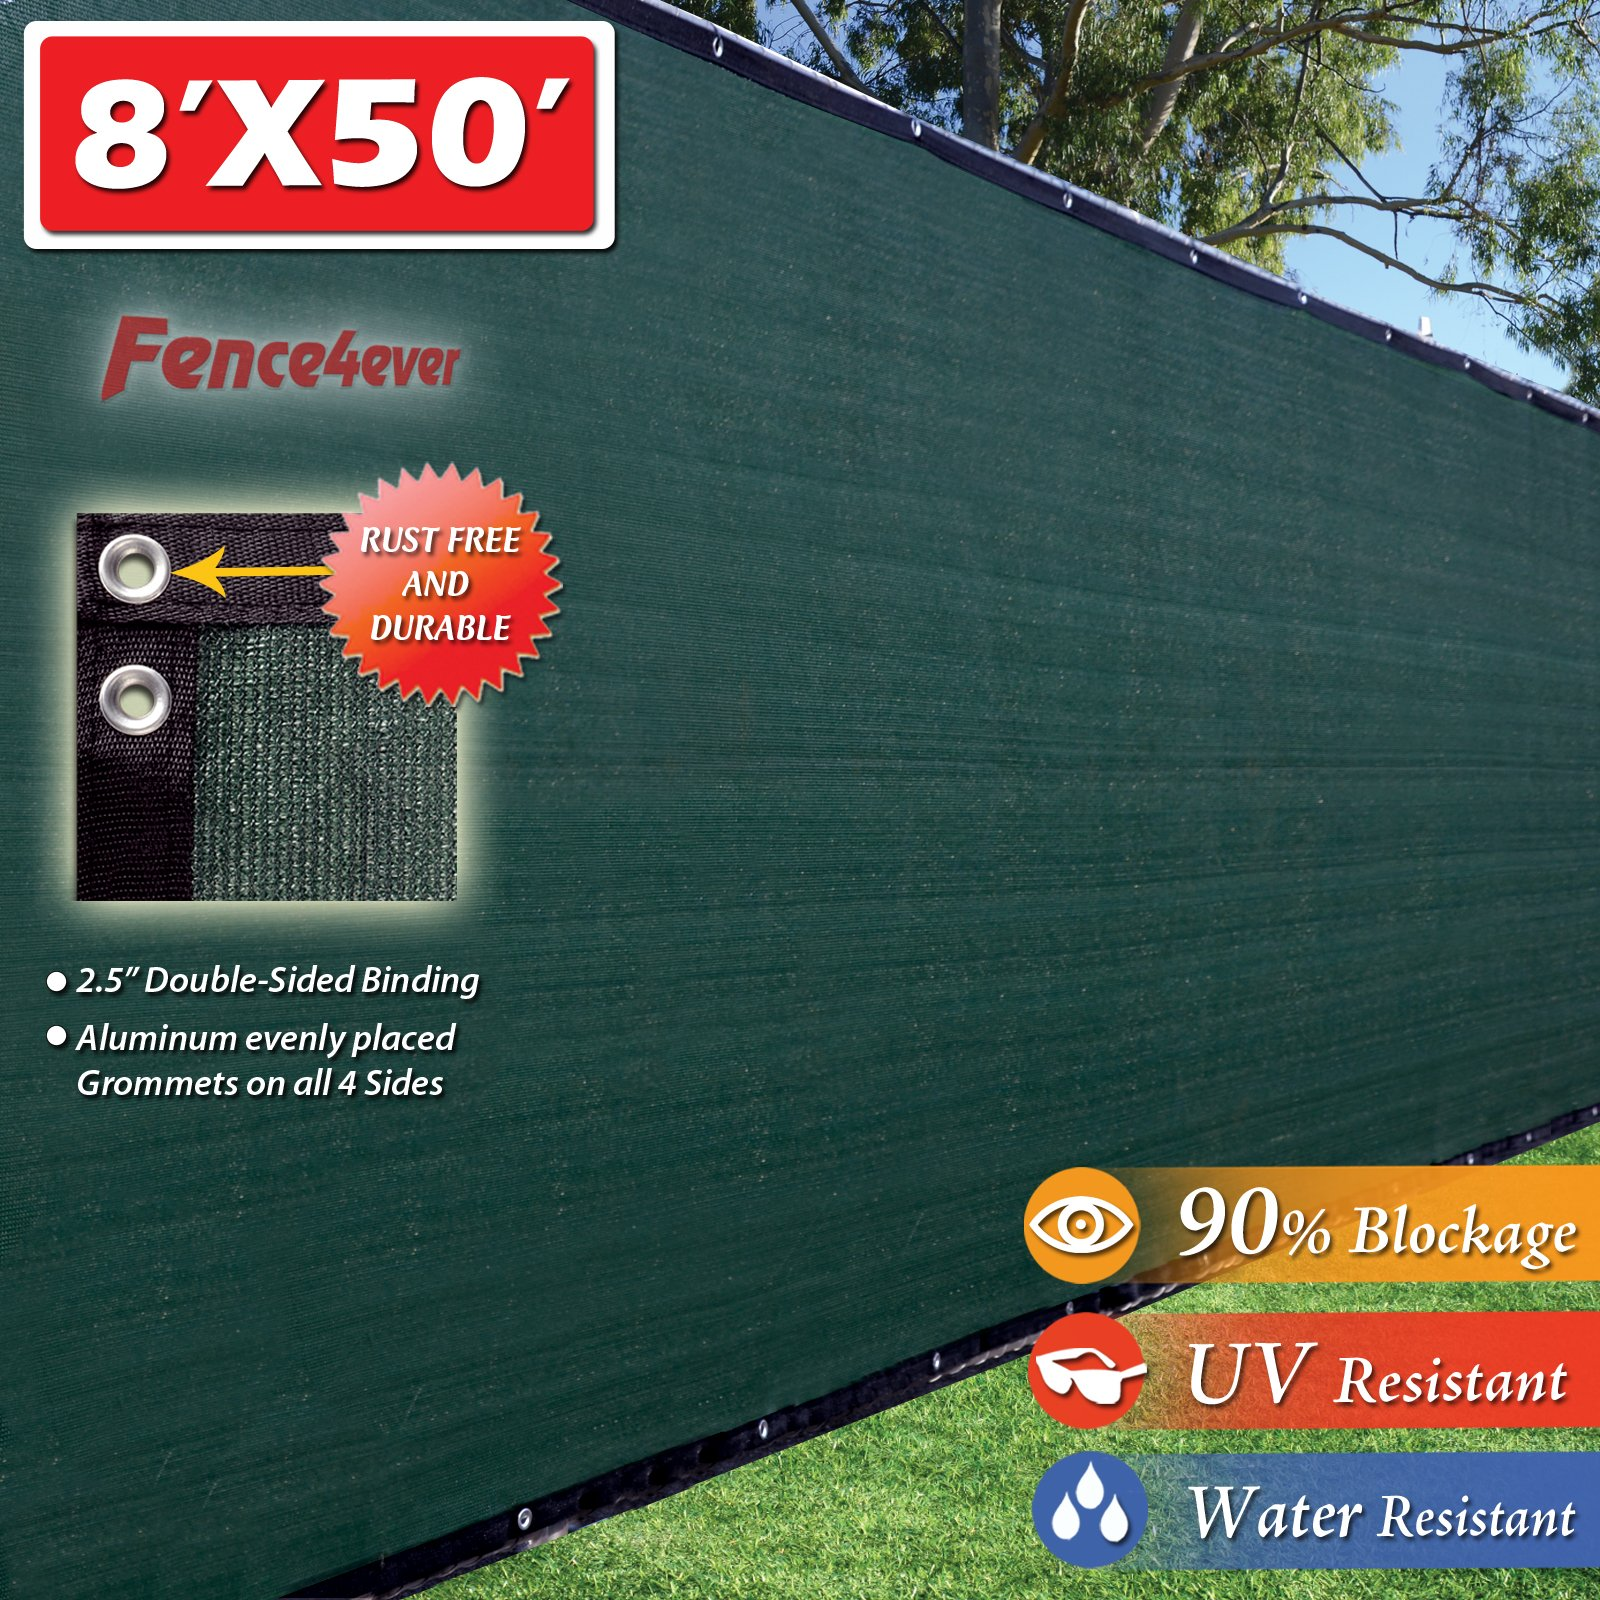 Fence4ever 8'x50' 8ft Tall 3rd Gen Olive Green Fence Privacy Screen Windscreen Shade Cover Mesh Fabric (Aluminum Grommets) Home, Court, or Construction